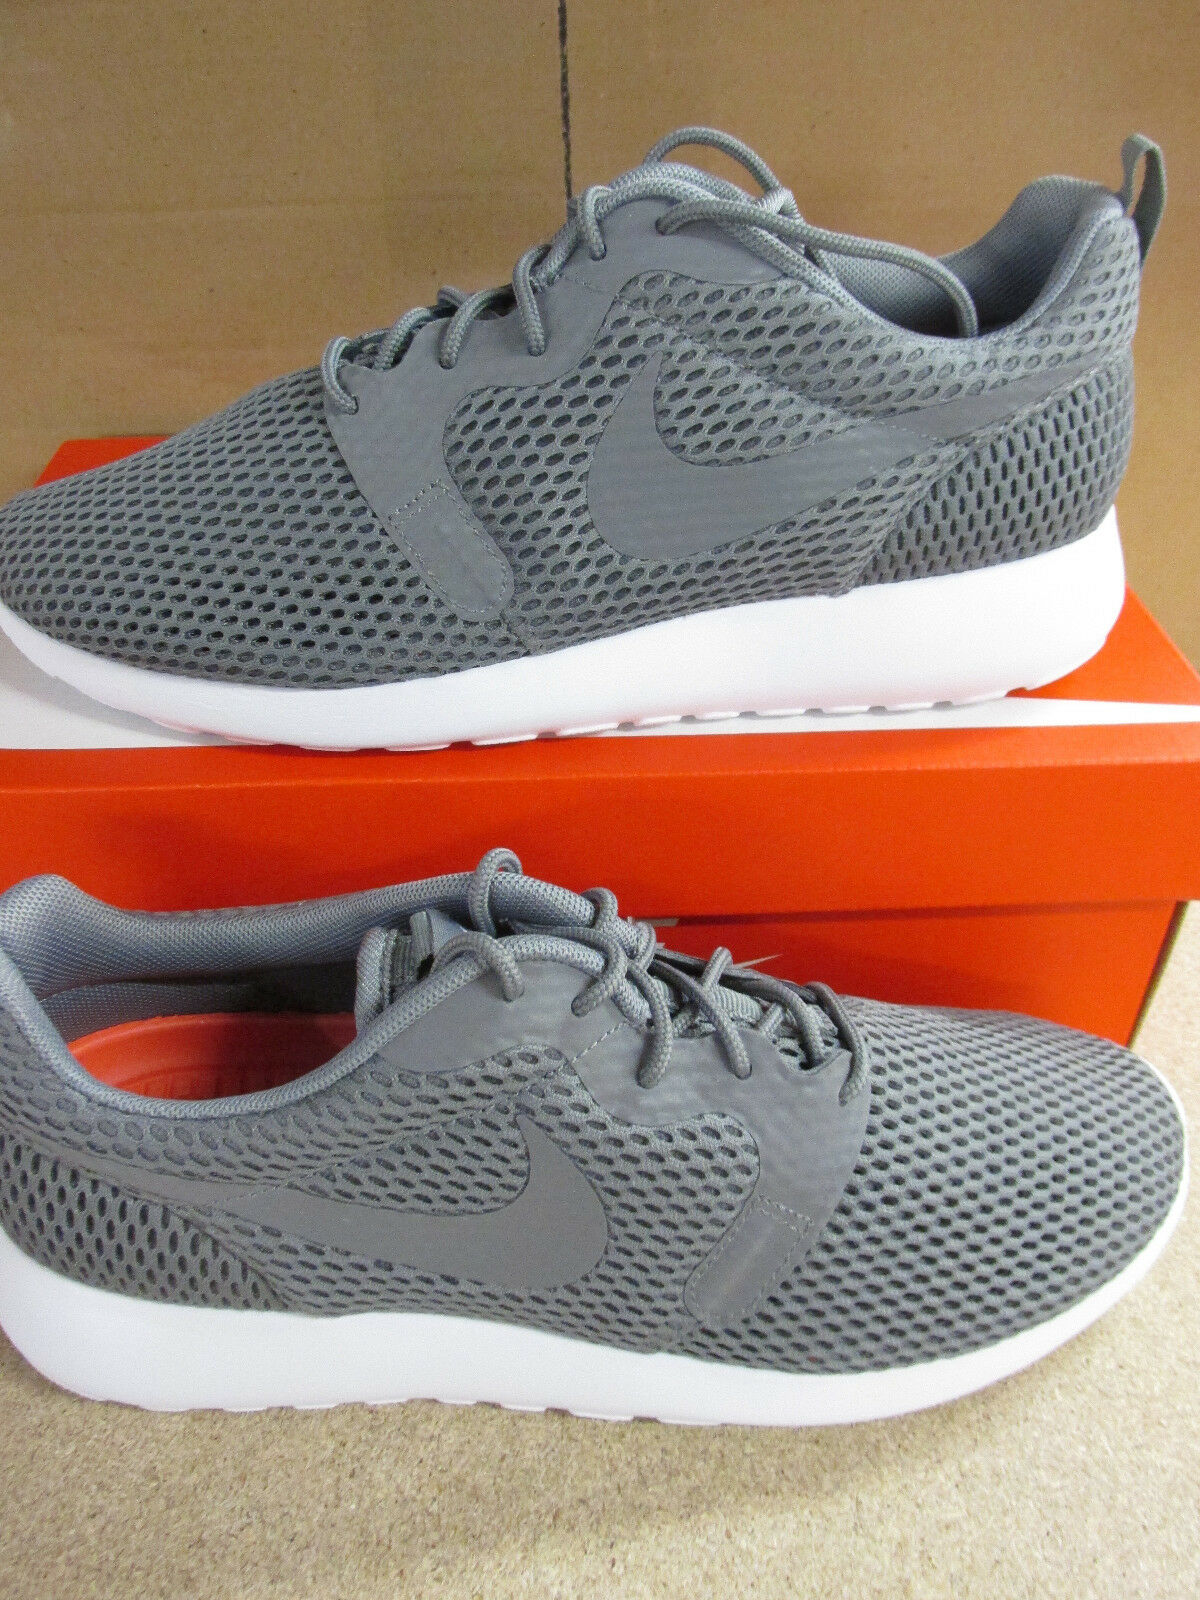 Nike Roshe One HYP BR Hommes Chaussures Trainers 833125 002 Baskets Chaussures Hommes 80903b